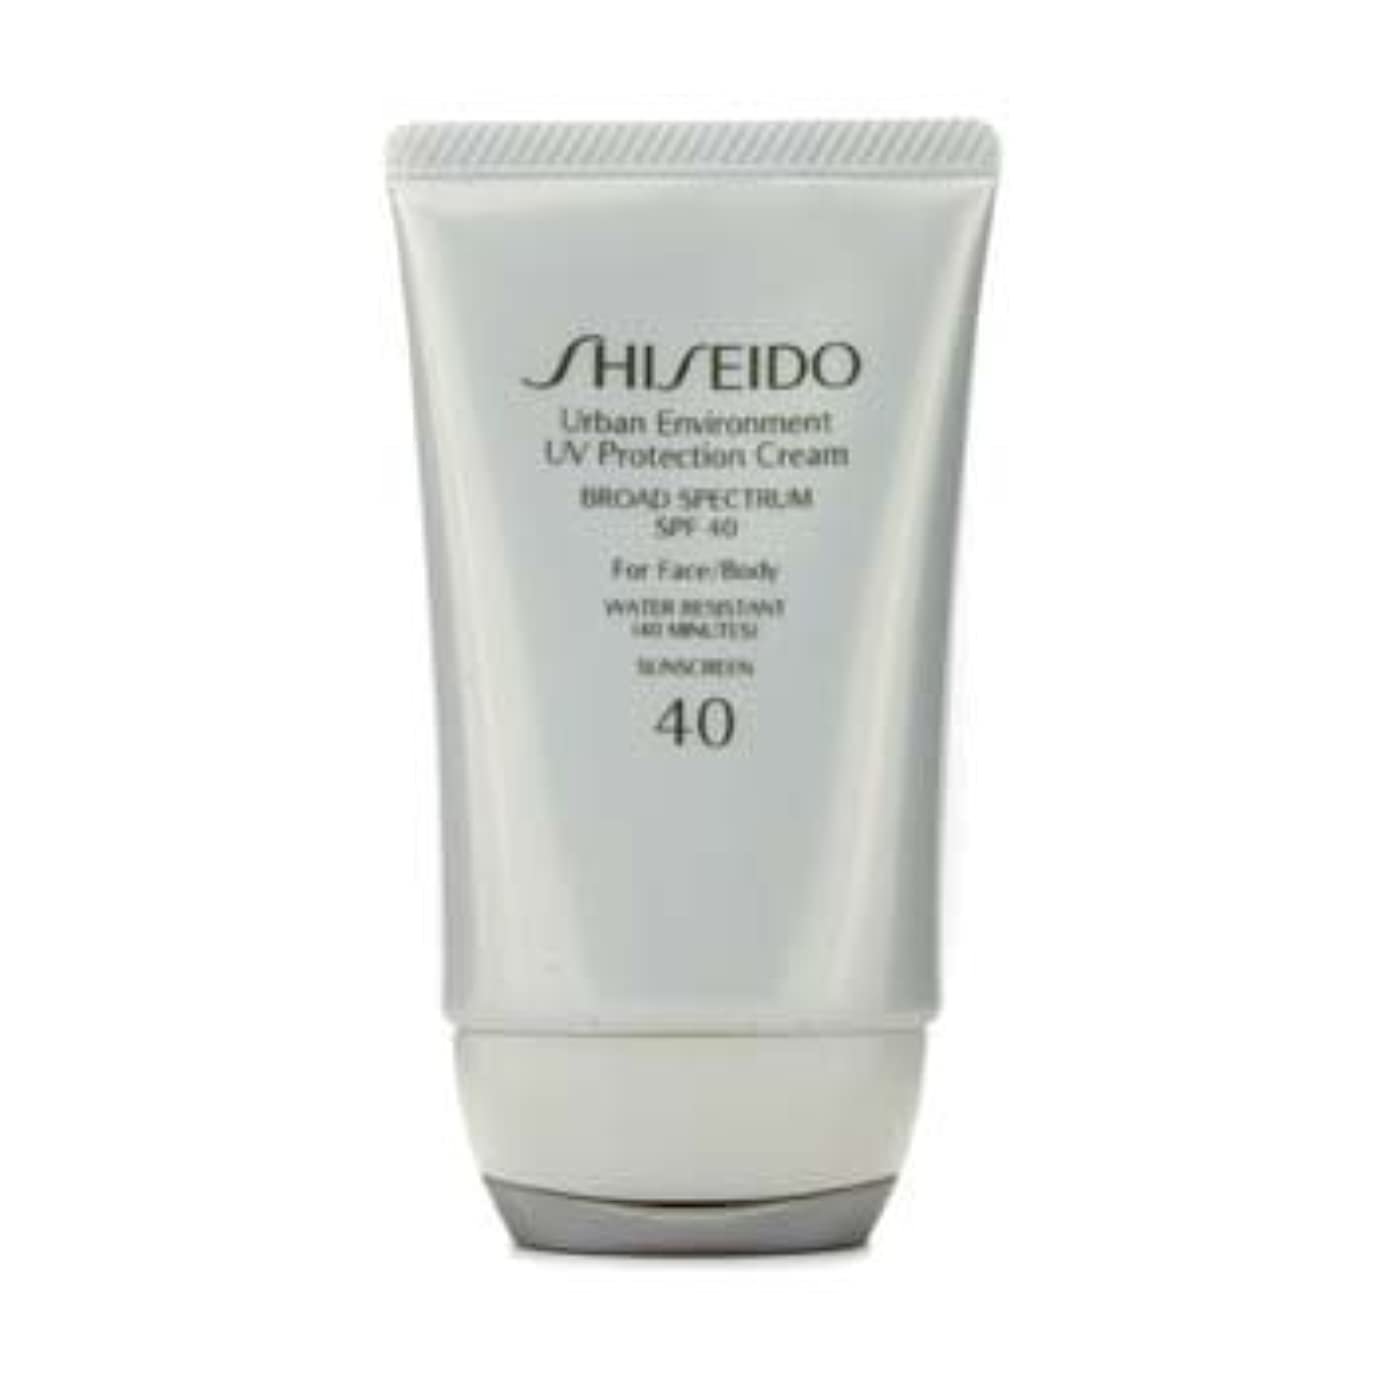 ひねりアイドルセールShiseido Urban Environment UV Protection Cream SPF 40 (For Face & Body) - 50ml/1.9oz by Shiseido [並行輸入品]